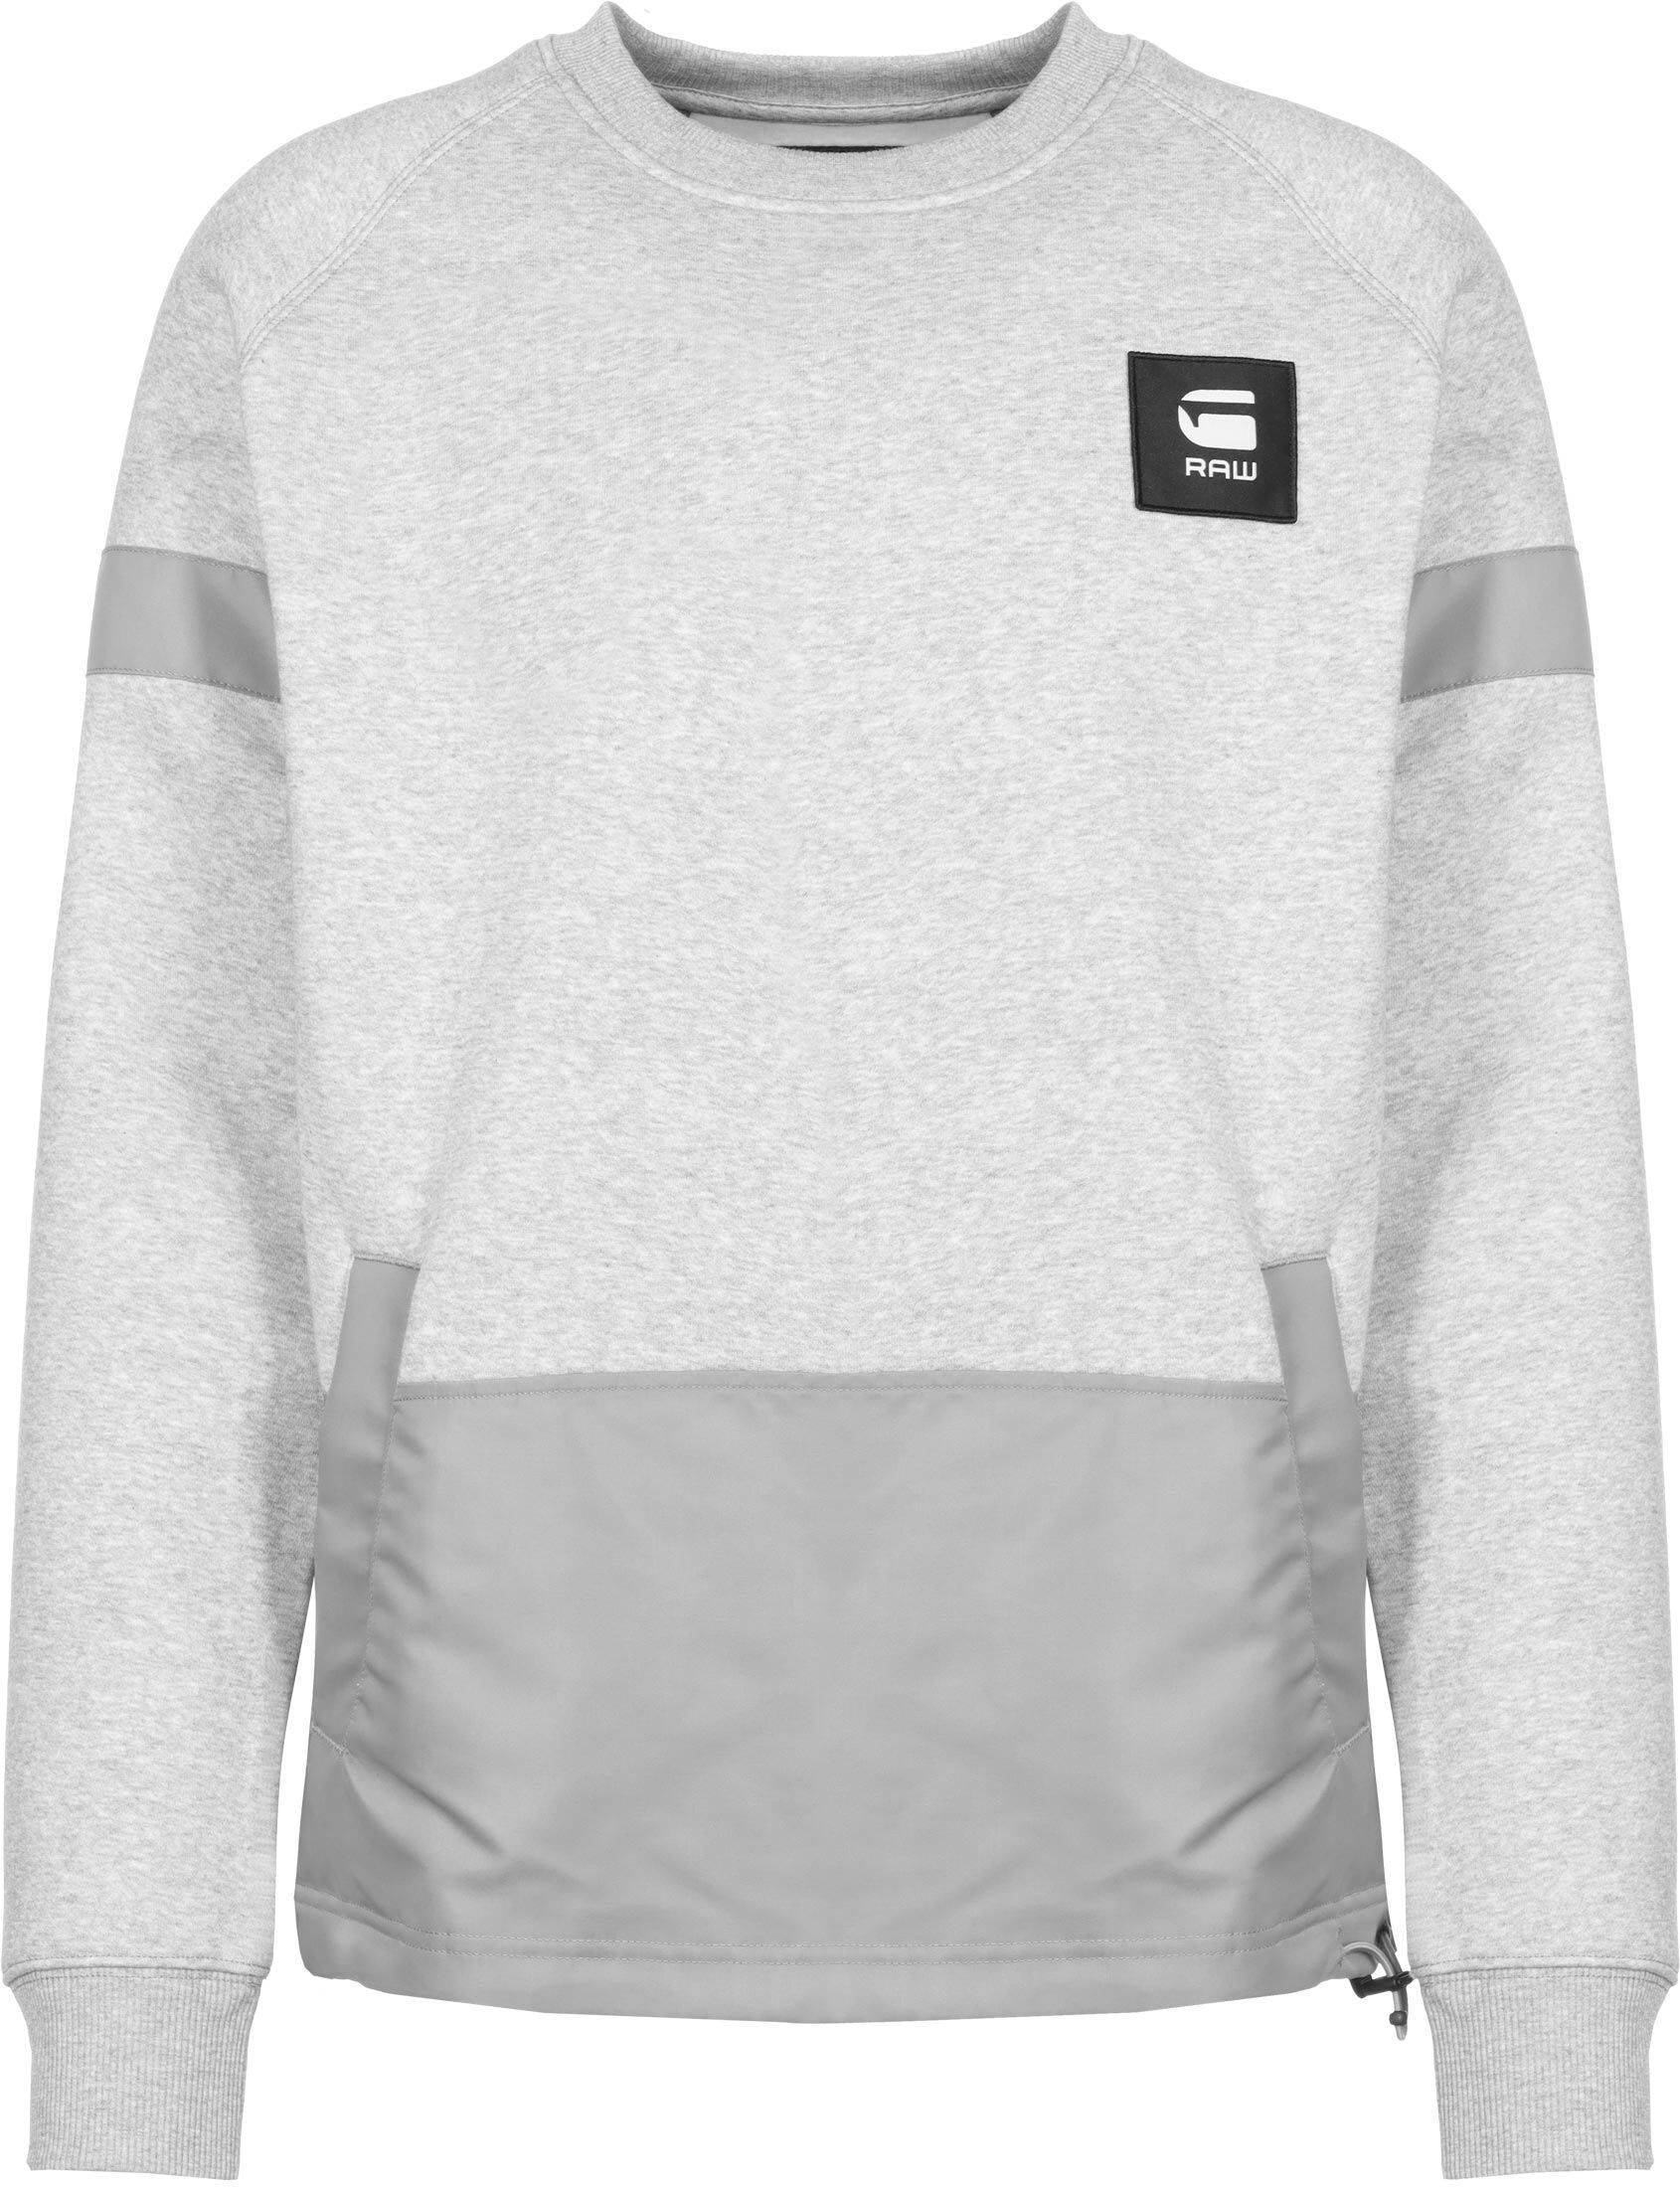 G-Star RAW G-Star Prisoner Mix, taille XL, homme, gris chiné